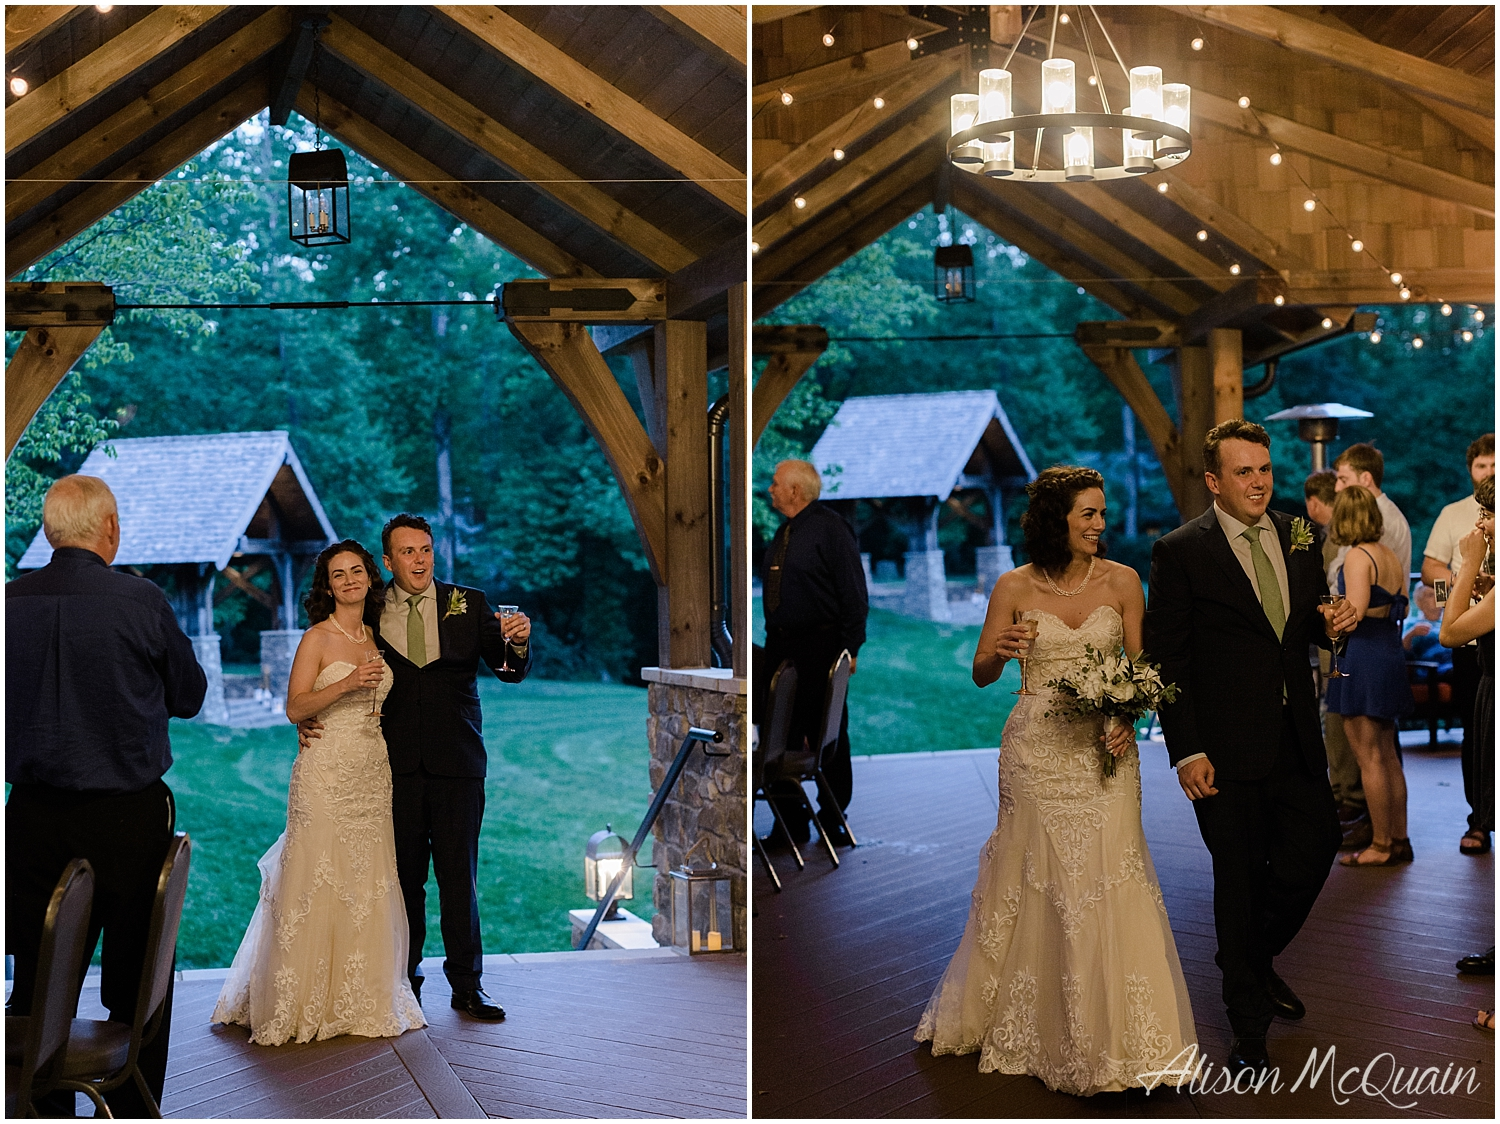 2018-05-23_0039LandC_wedding_dancingbearlodge_townsend_tn_amp.jpg